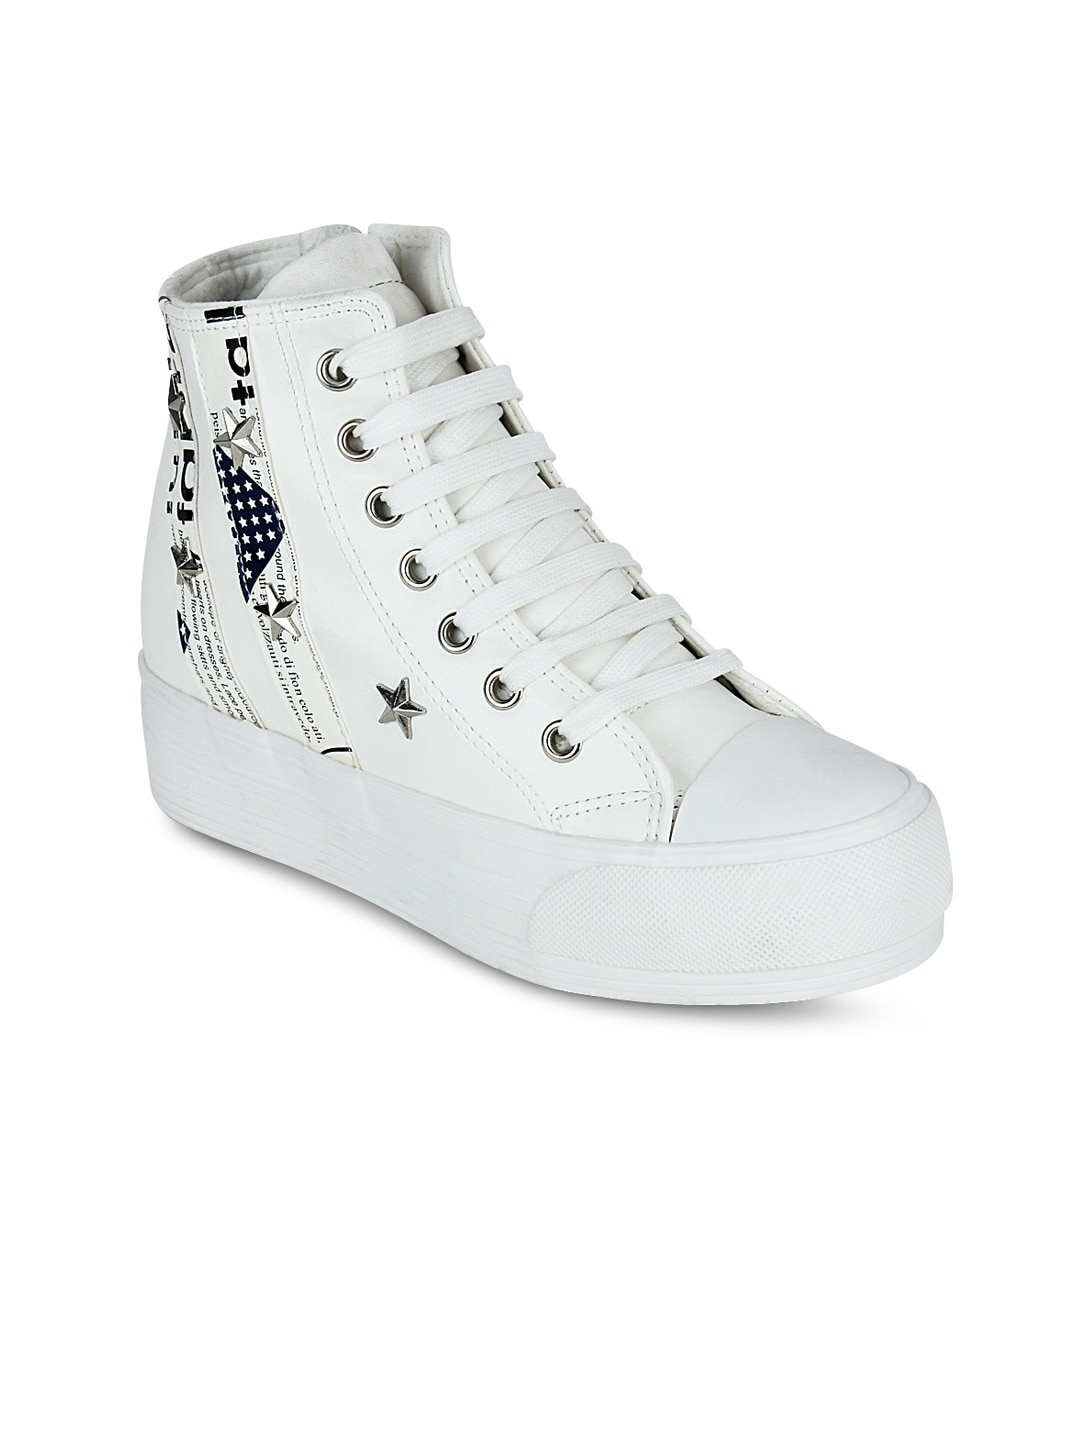 119645344a6 Get glamr lt-be-6200-white Women White Sneakers - Best Price in ...